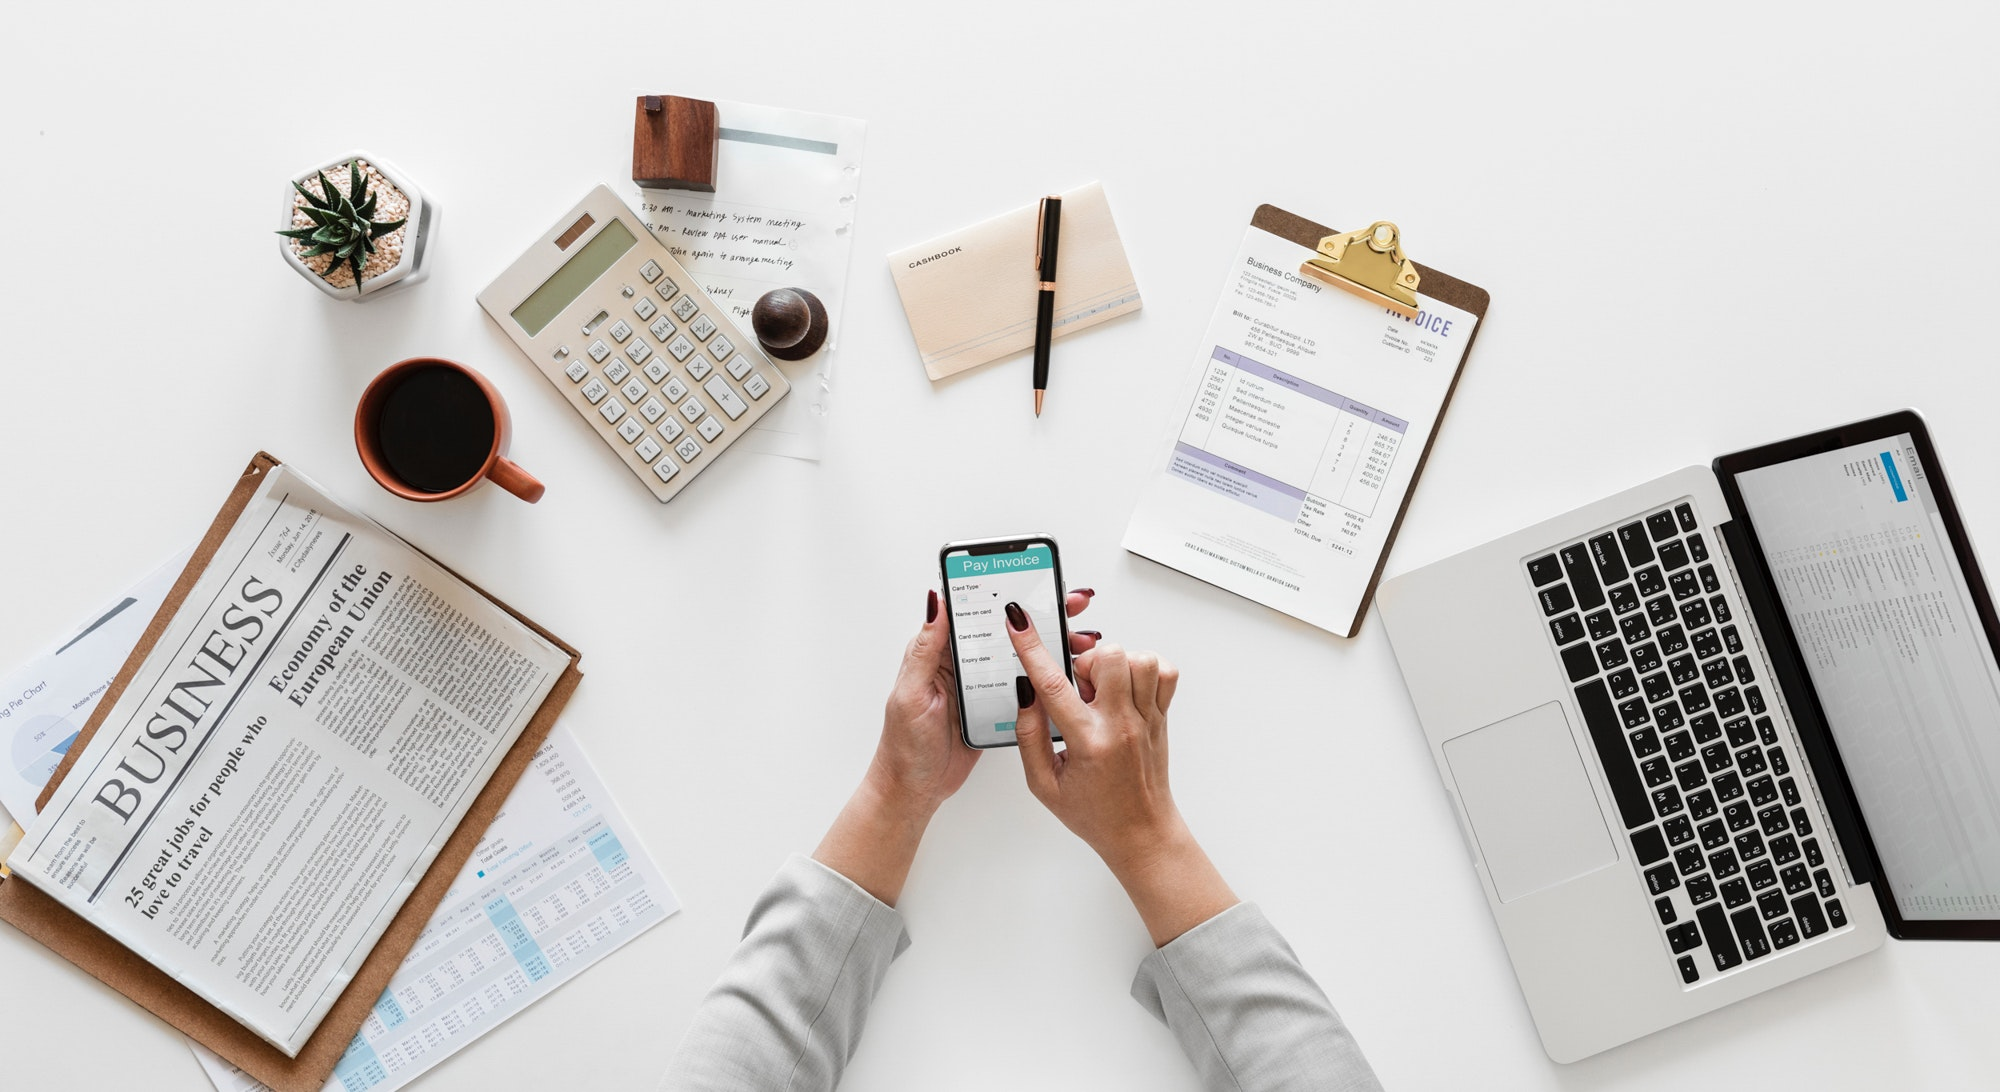 Various objects on a white desk. Objects include a laptop, clipboard, envelope, pen, calculator, mug, newspaper, and a person holding a phone.